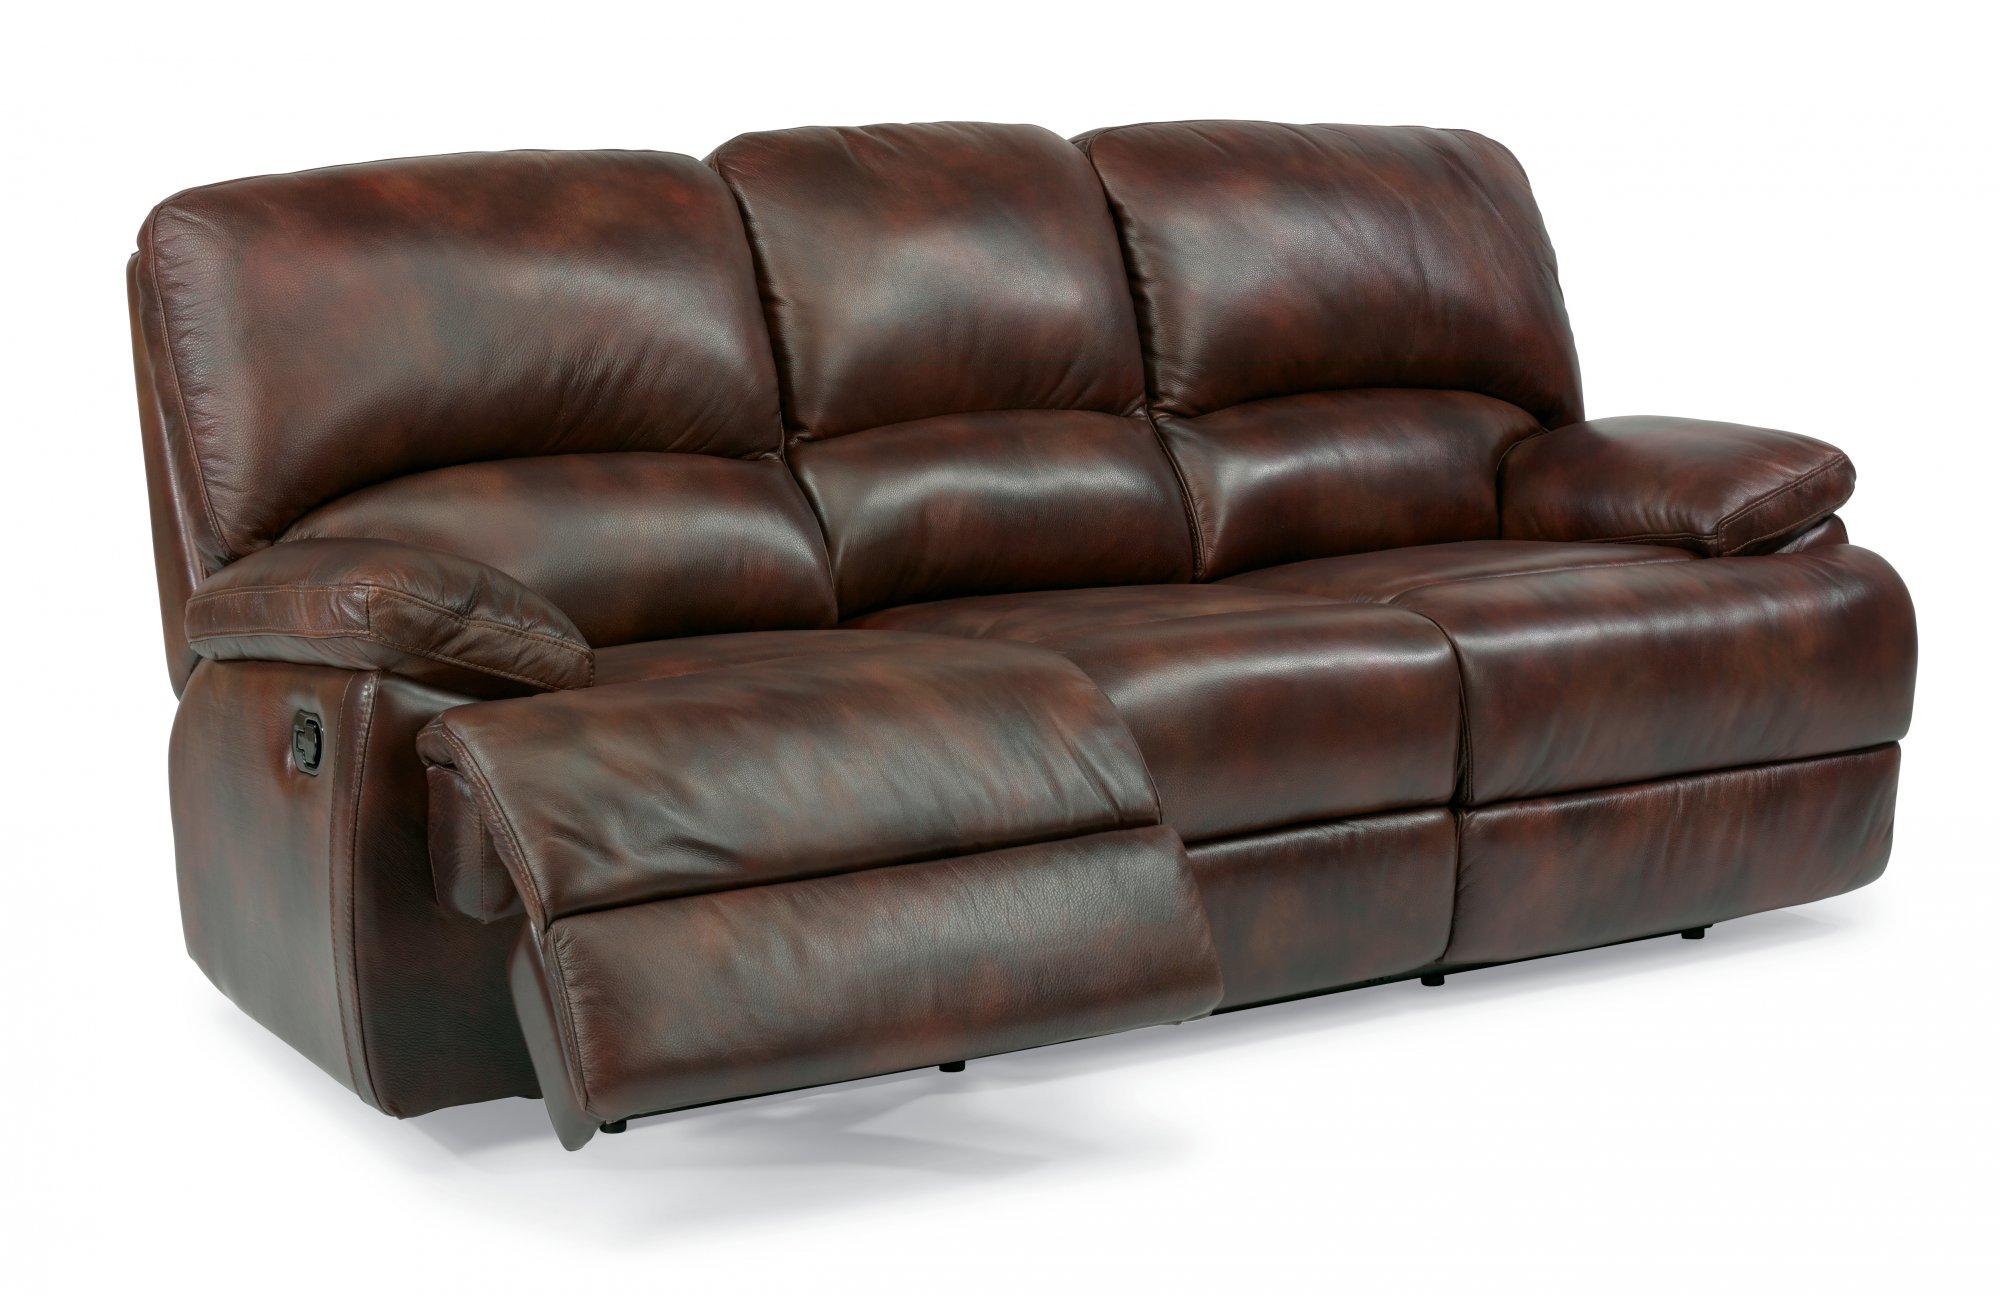 Leather Three-Cushion Reclining Sofa with Chaise Footrests  sc 1 st  Flexsteel : reclining sofa chaise - islam-shia.org